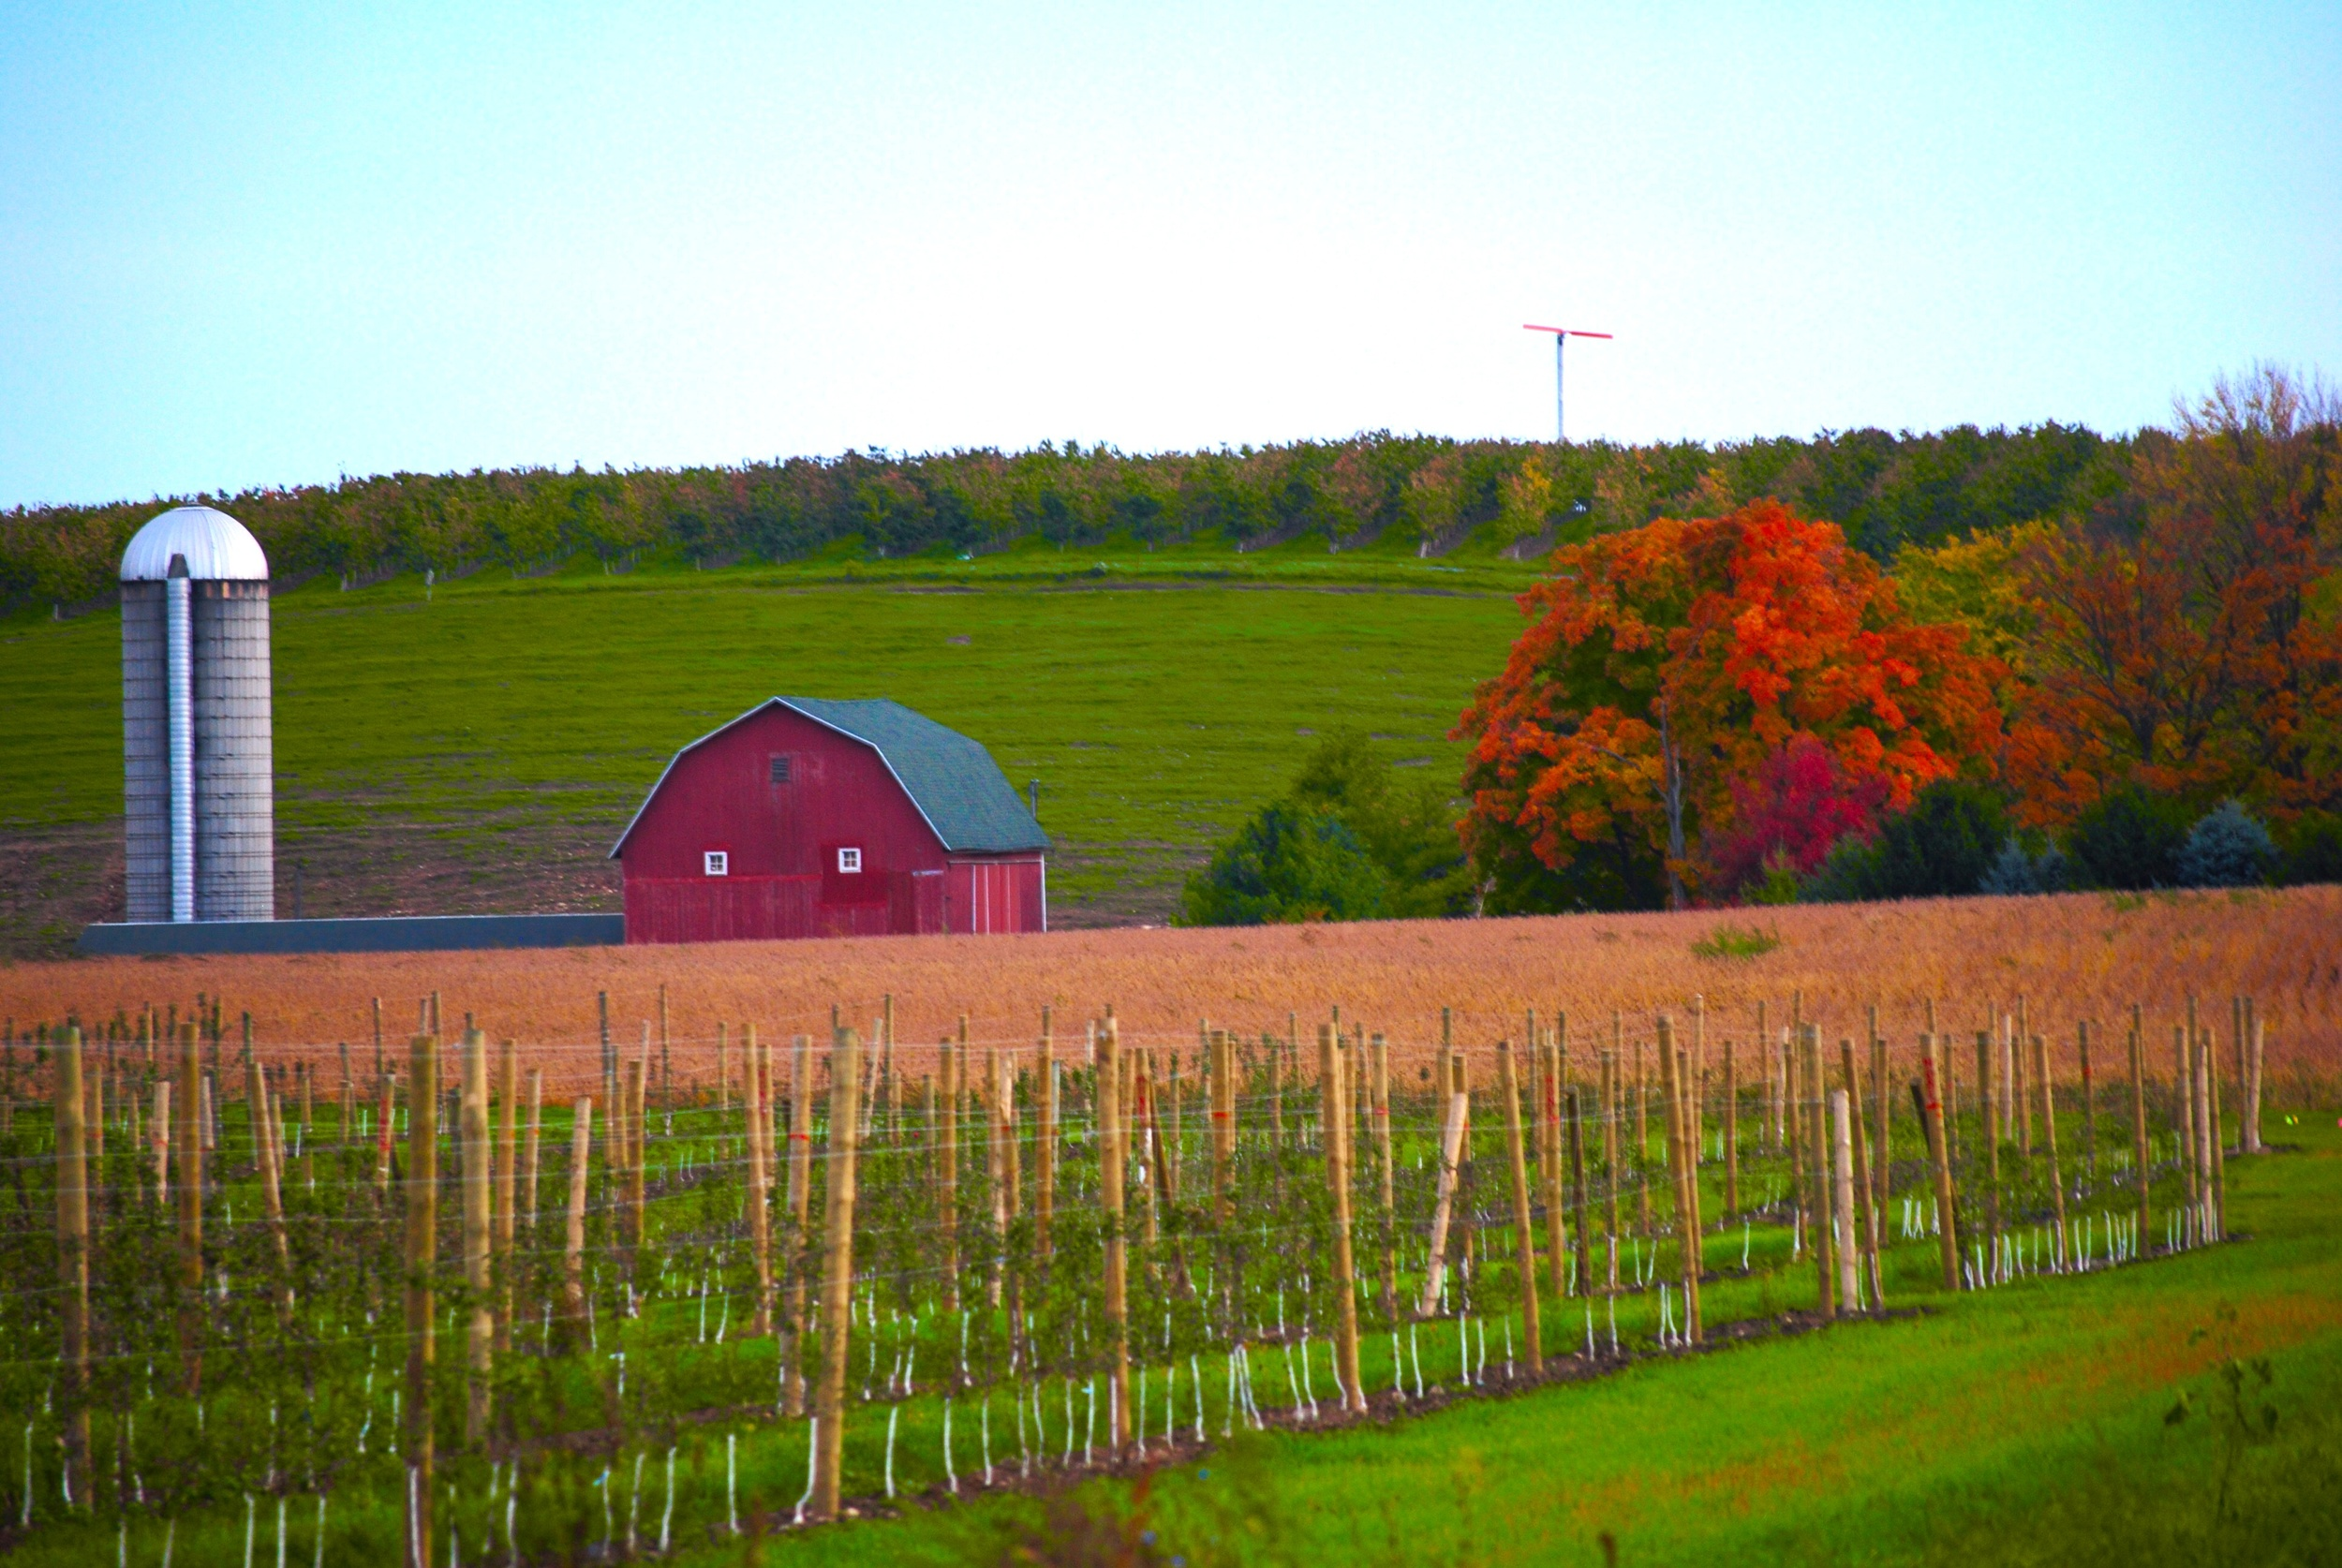 Farm on Fruit Ridge, Grand Rapids, Michigan | Photo Credit: Terri Spaulding